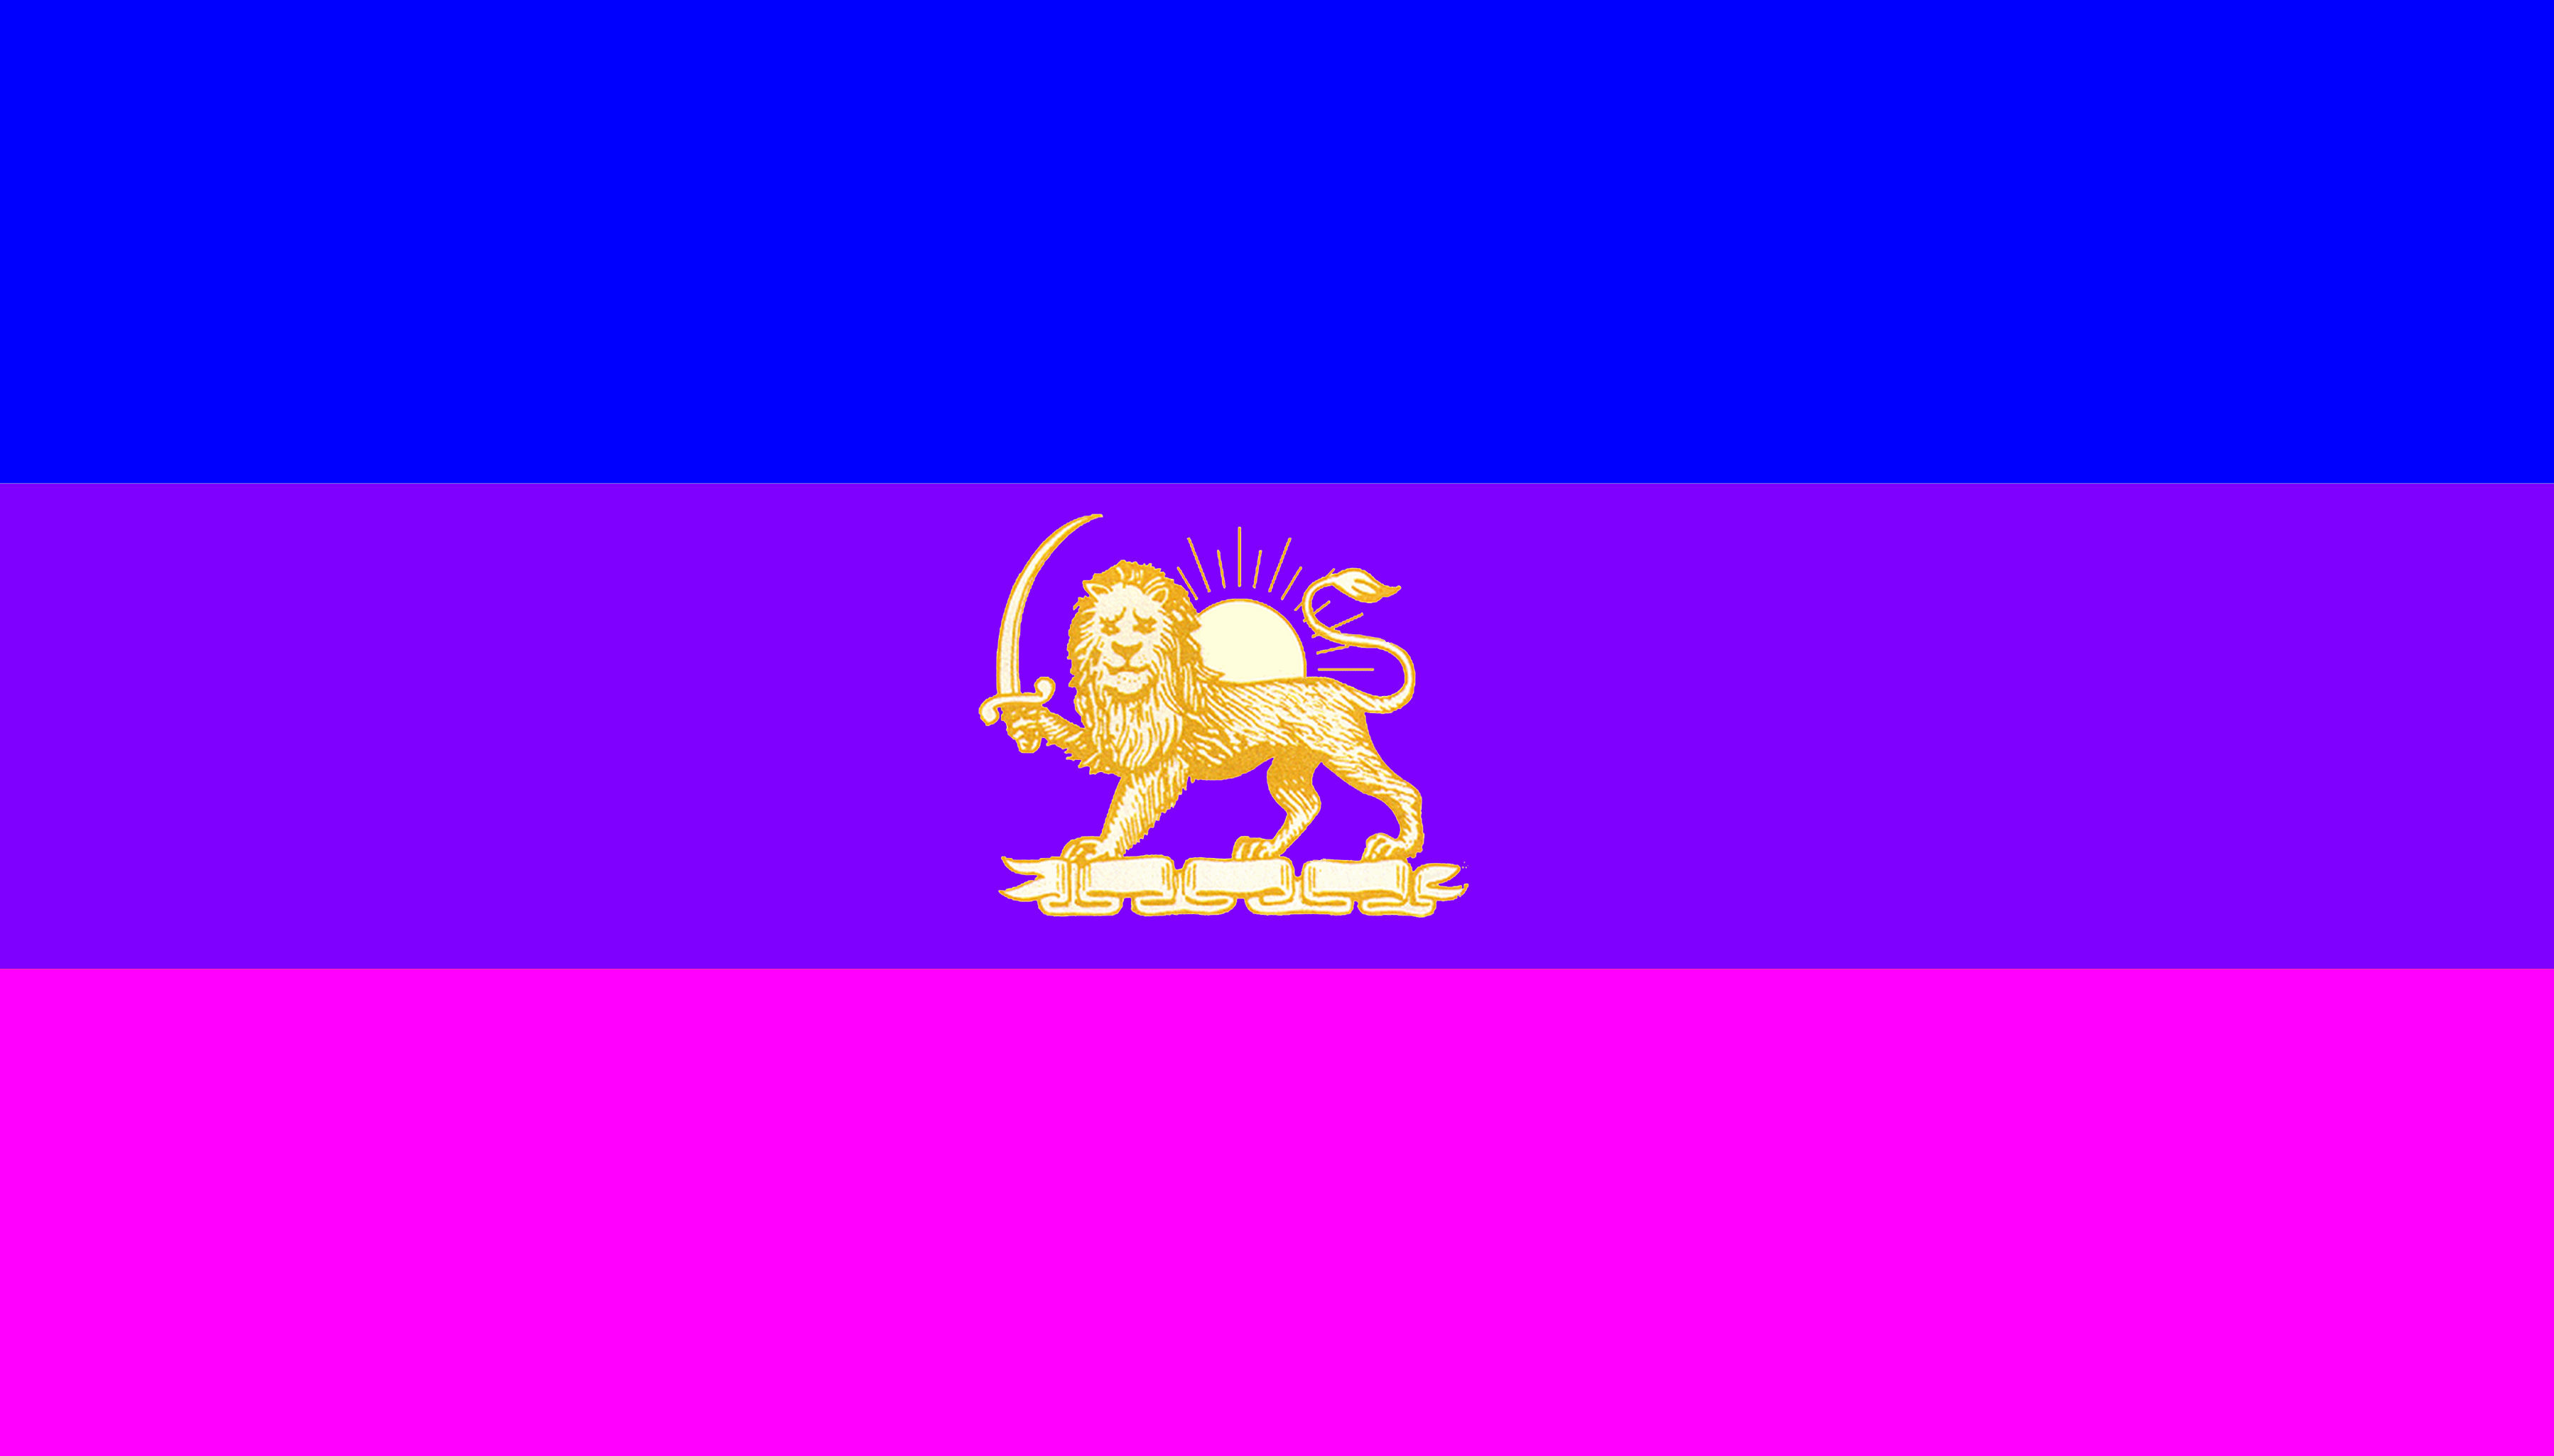 Bisexual Pride Flag #10